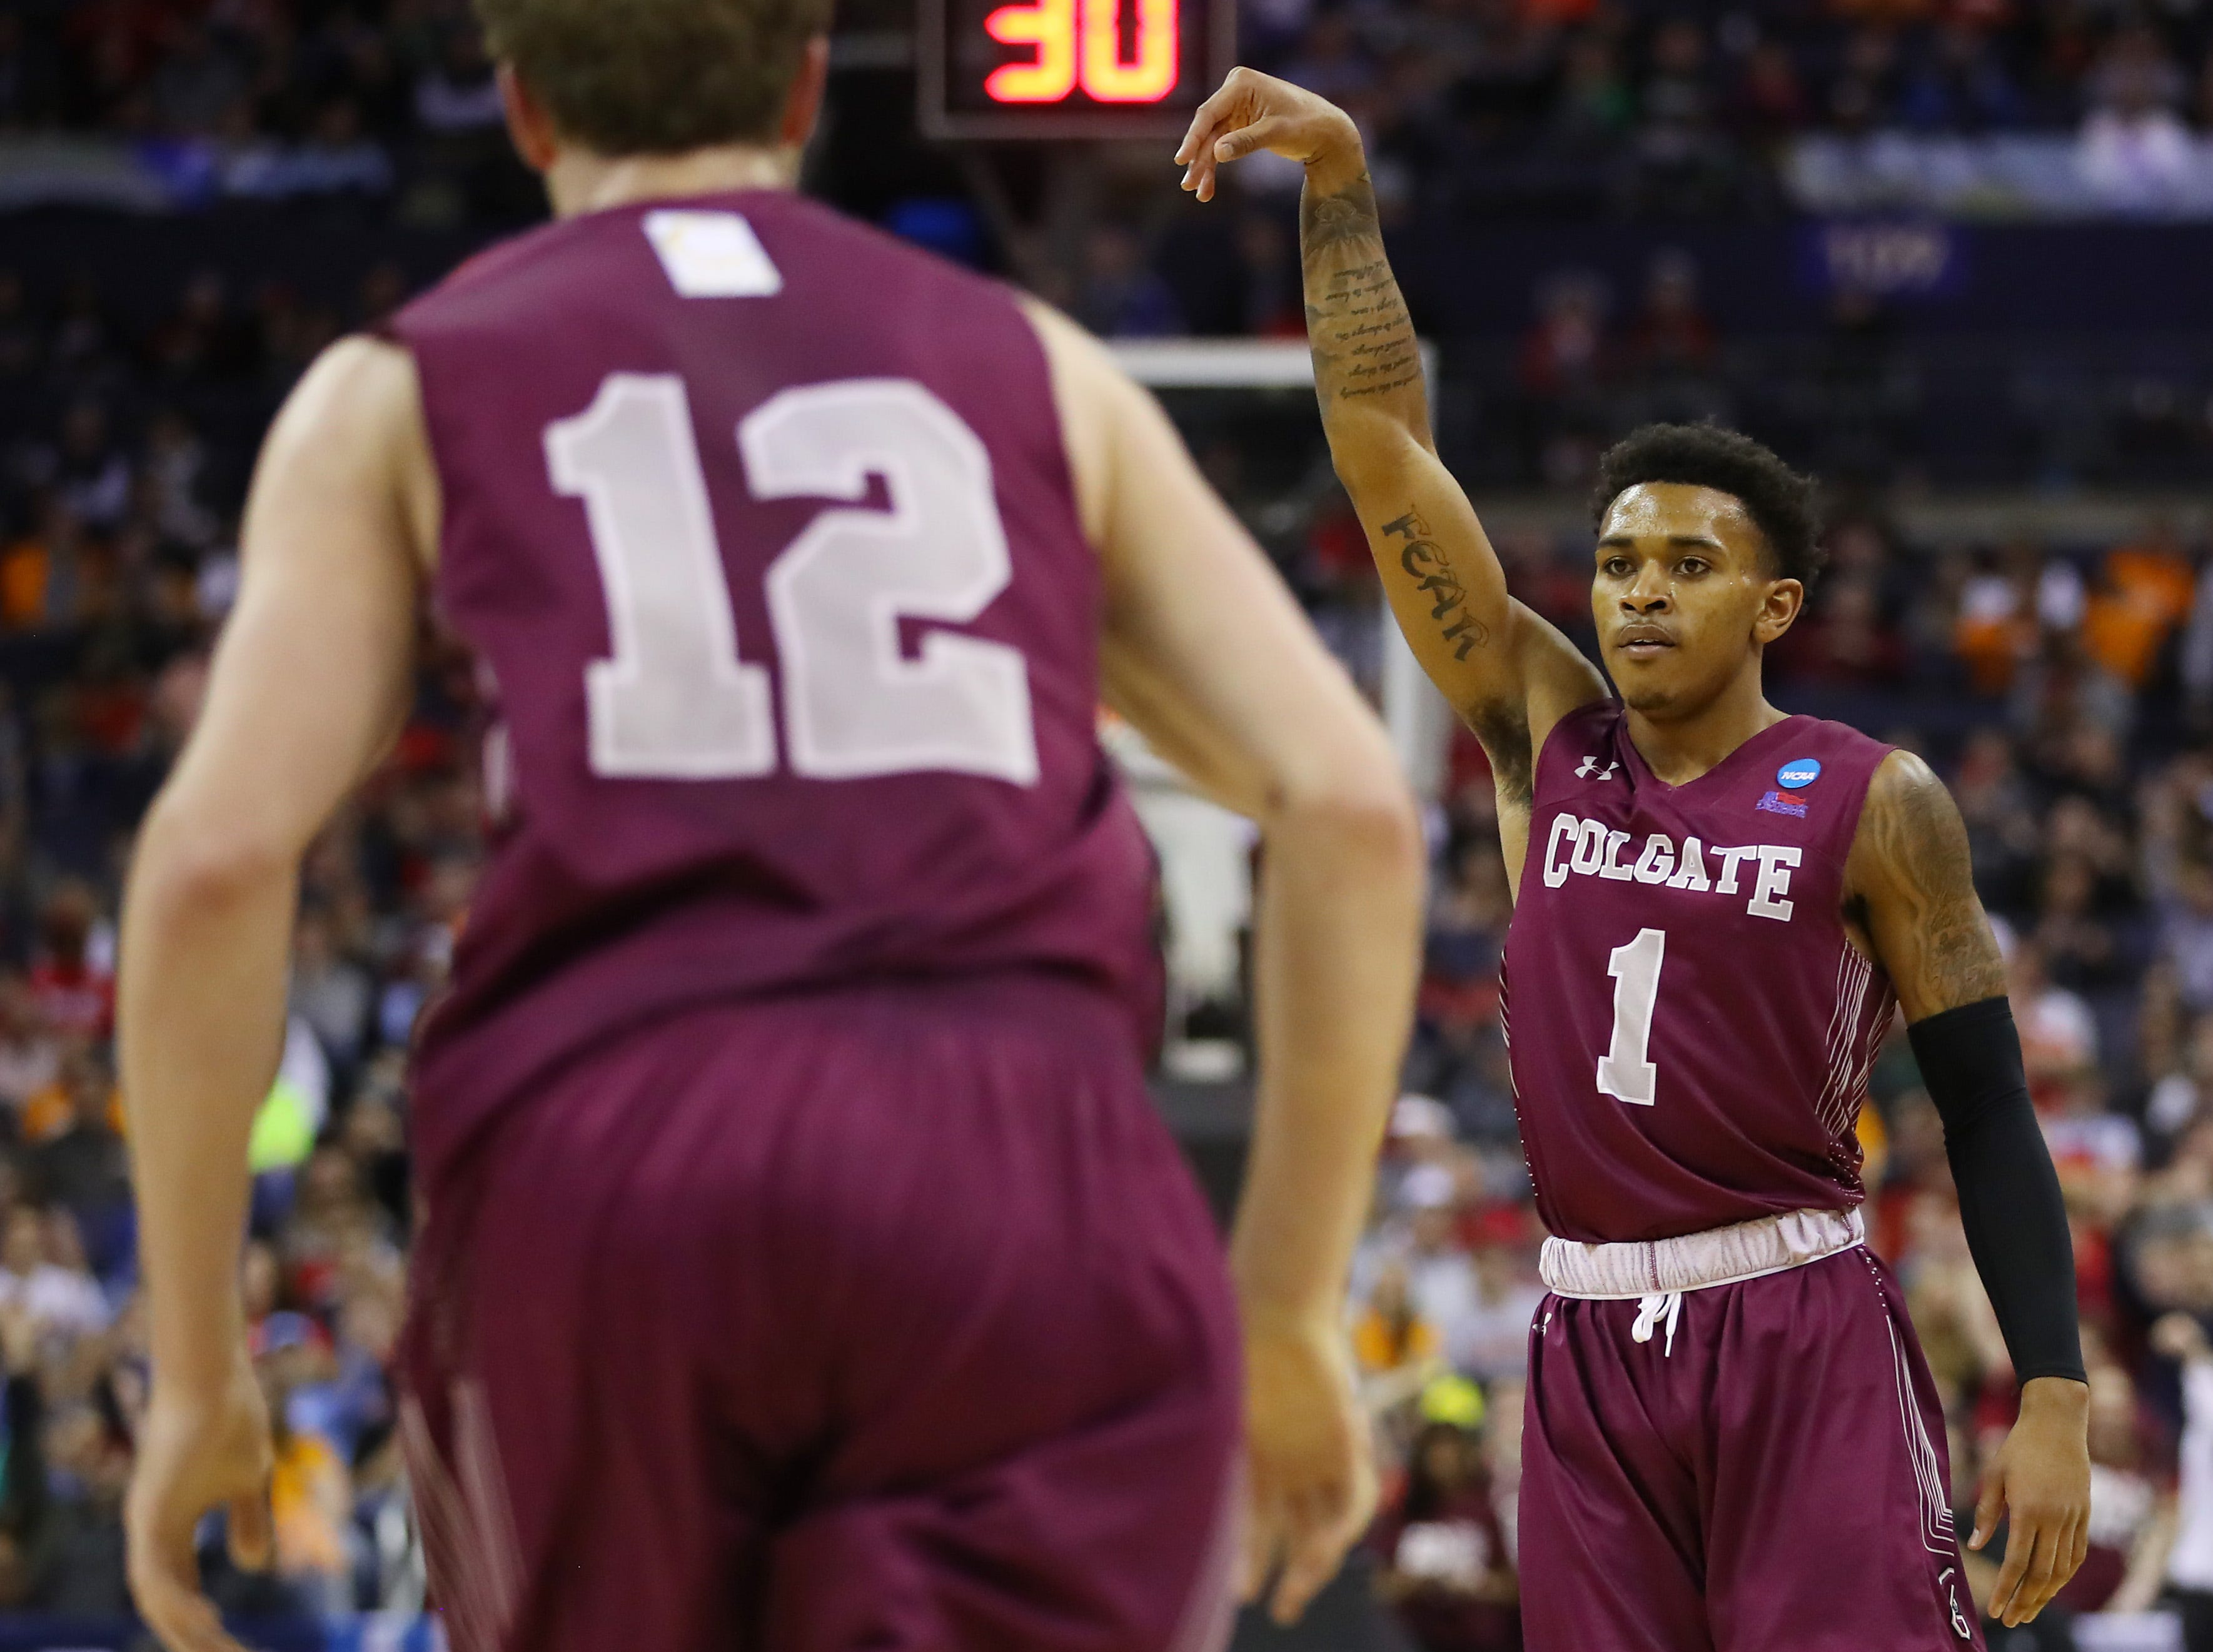 COLUMBUS, OHIO - MARCH 22: Jordan Burns #1 of the Colgate Raiders reacts during the first half against the Tennessee Volunteers in the first round of the 2019 NCAA Men's Basketball Tournament at Nationwide Arena on March 22, 2019 in Columbus, Ohio. (Photo by Gregory Shamus/Getty Images)